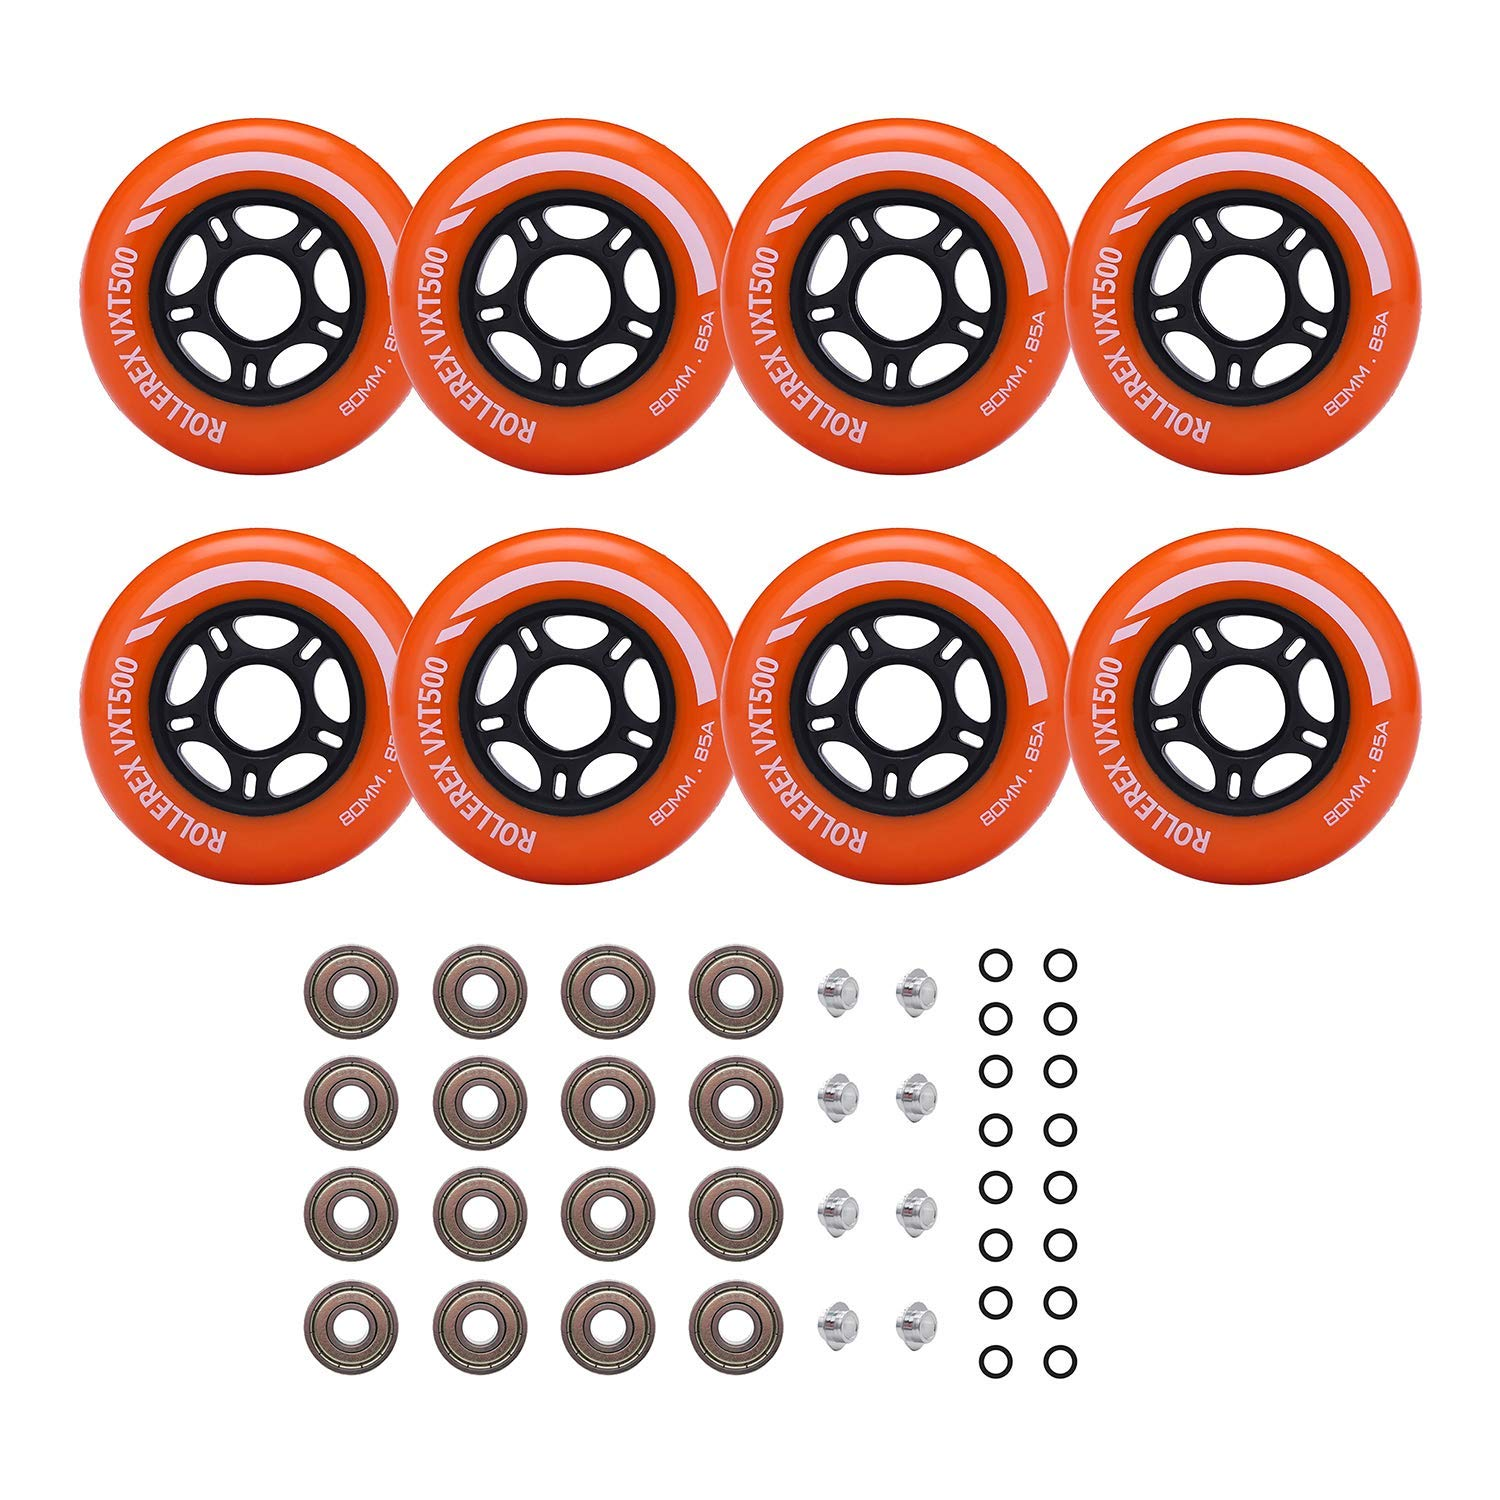 Rollerex Inline Skate Wheels VXT500 80mm (8-Pack or 2-Pack or 2 Wheels w/Bearings, Spacers and Washers) (80mm Sunrise Orange (8 Wheels w/Bearings, spacers and washers)) by Rollerex